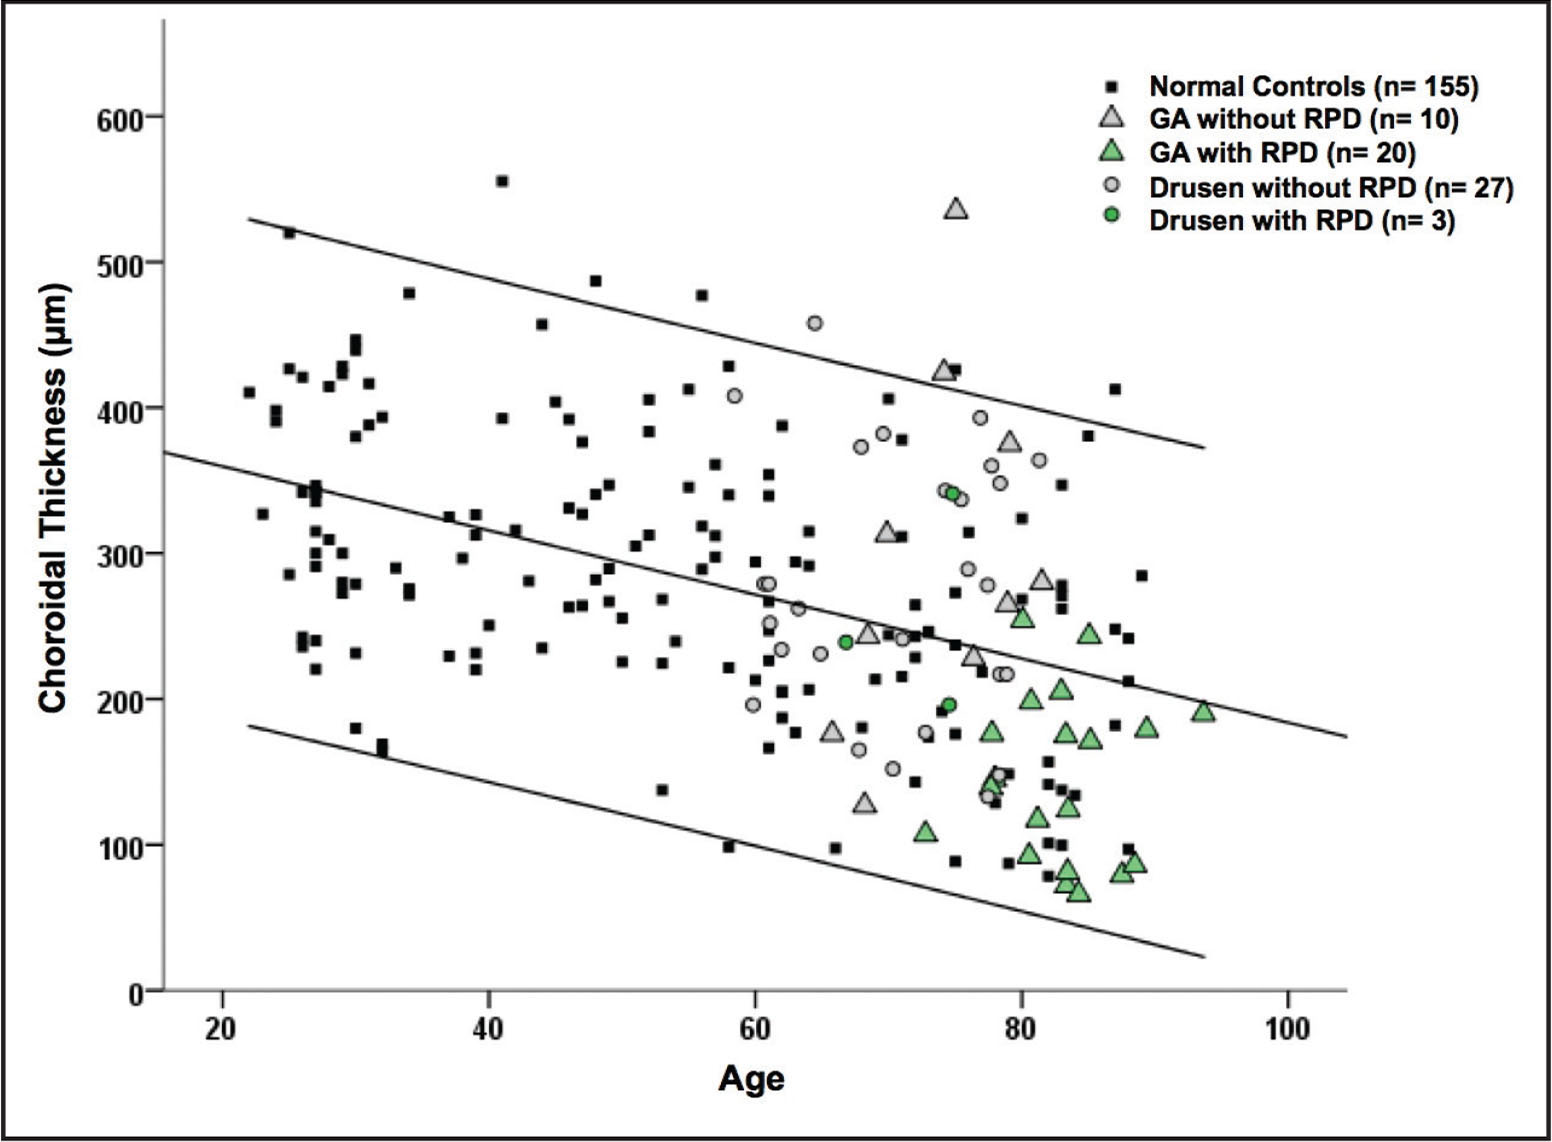 Choroidal thickness (CT) versus age by patient group. This comparison of eyes with geographic atrophy (GA) in the presence or absence of reticular pseudodrusen (RPD) demonstrates that eyes in patients of a similar age (75 to 85 years) show markedly different CT measurements depending on the presence of RPD.